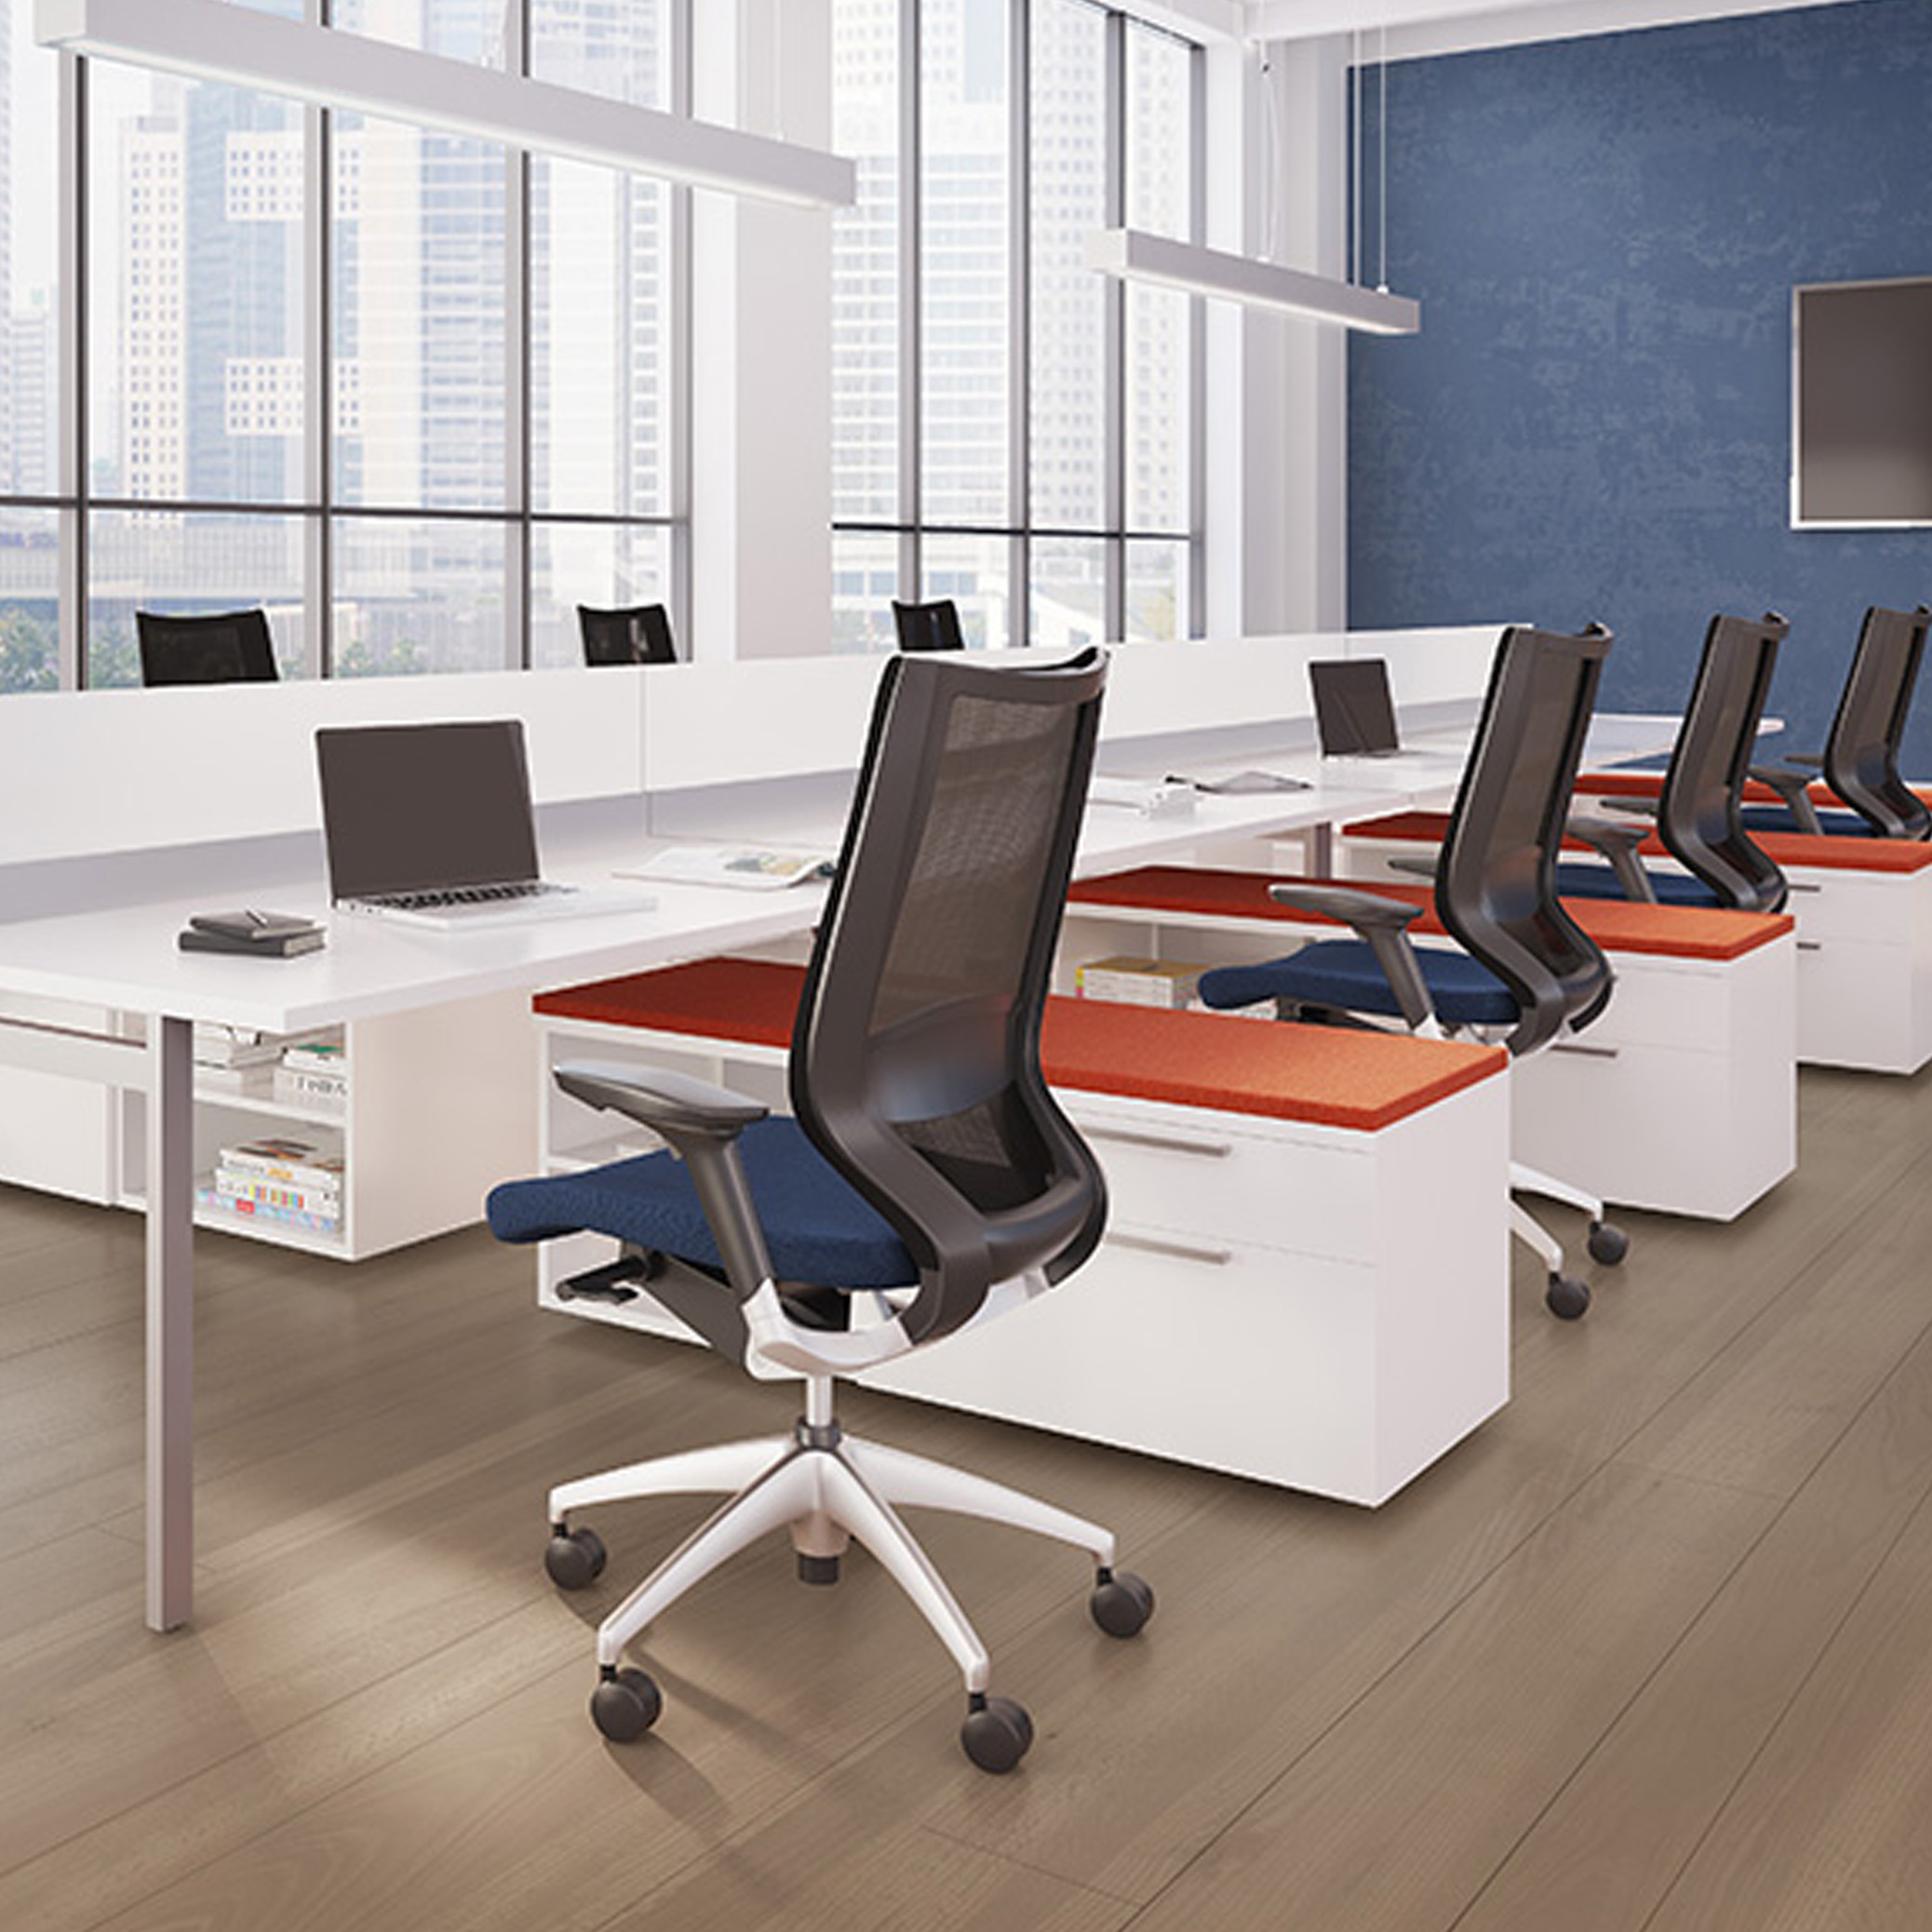 Brilliant 25 Cort Office Furniture Design Ideas Of Cort Used Office Furniture Pre Rented